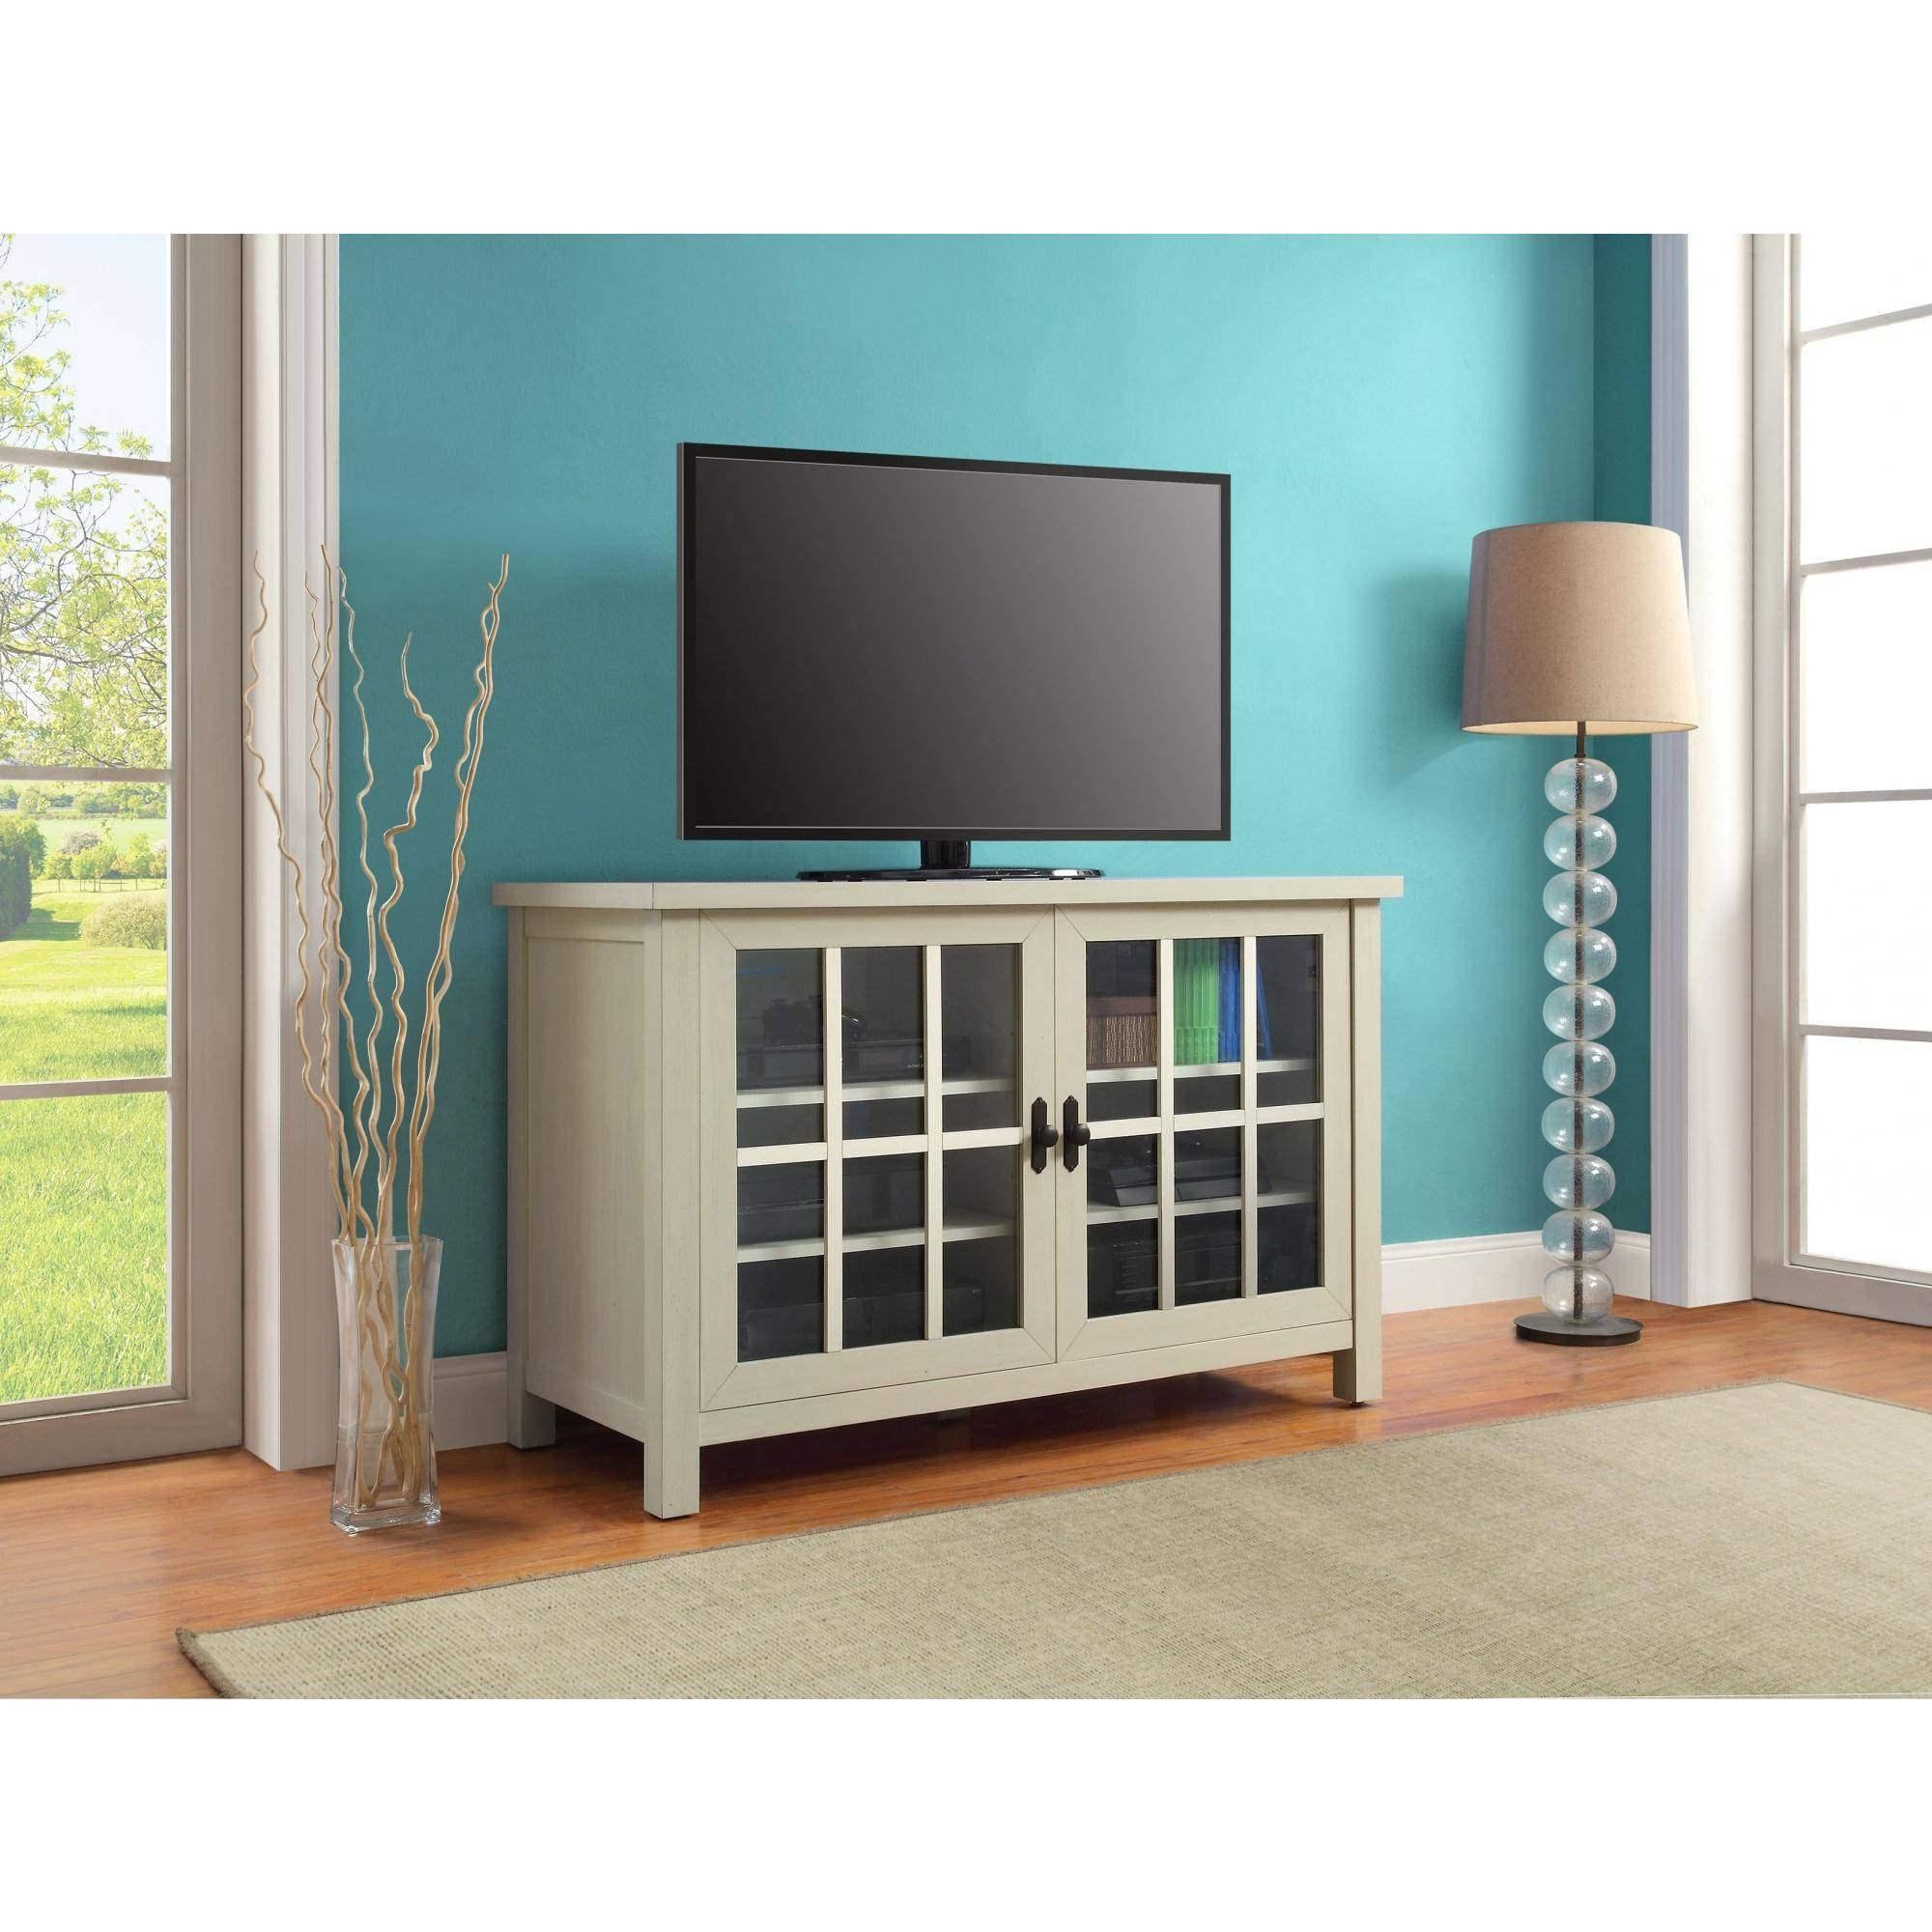 Better Homes And Gardens Oxford Square Tv Console For Tvs Up To 55 Inside Square Tv Stands (View 4 of 15)